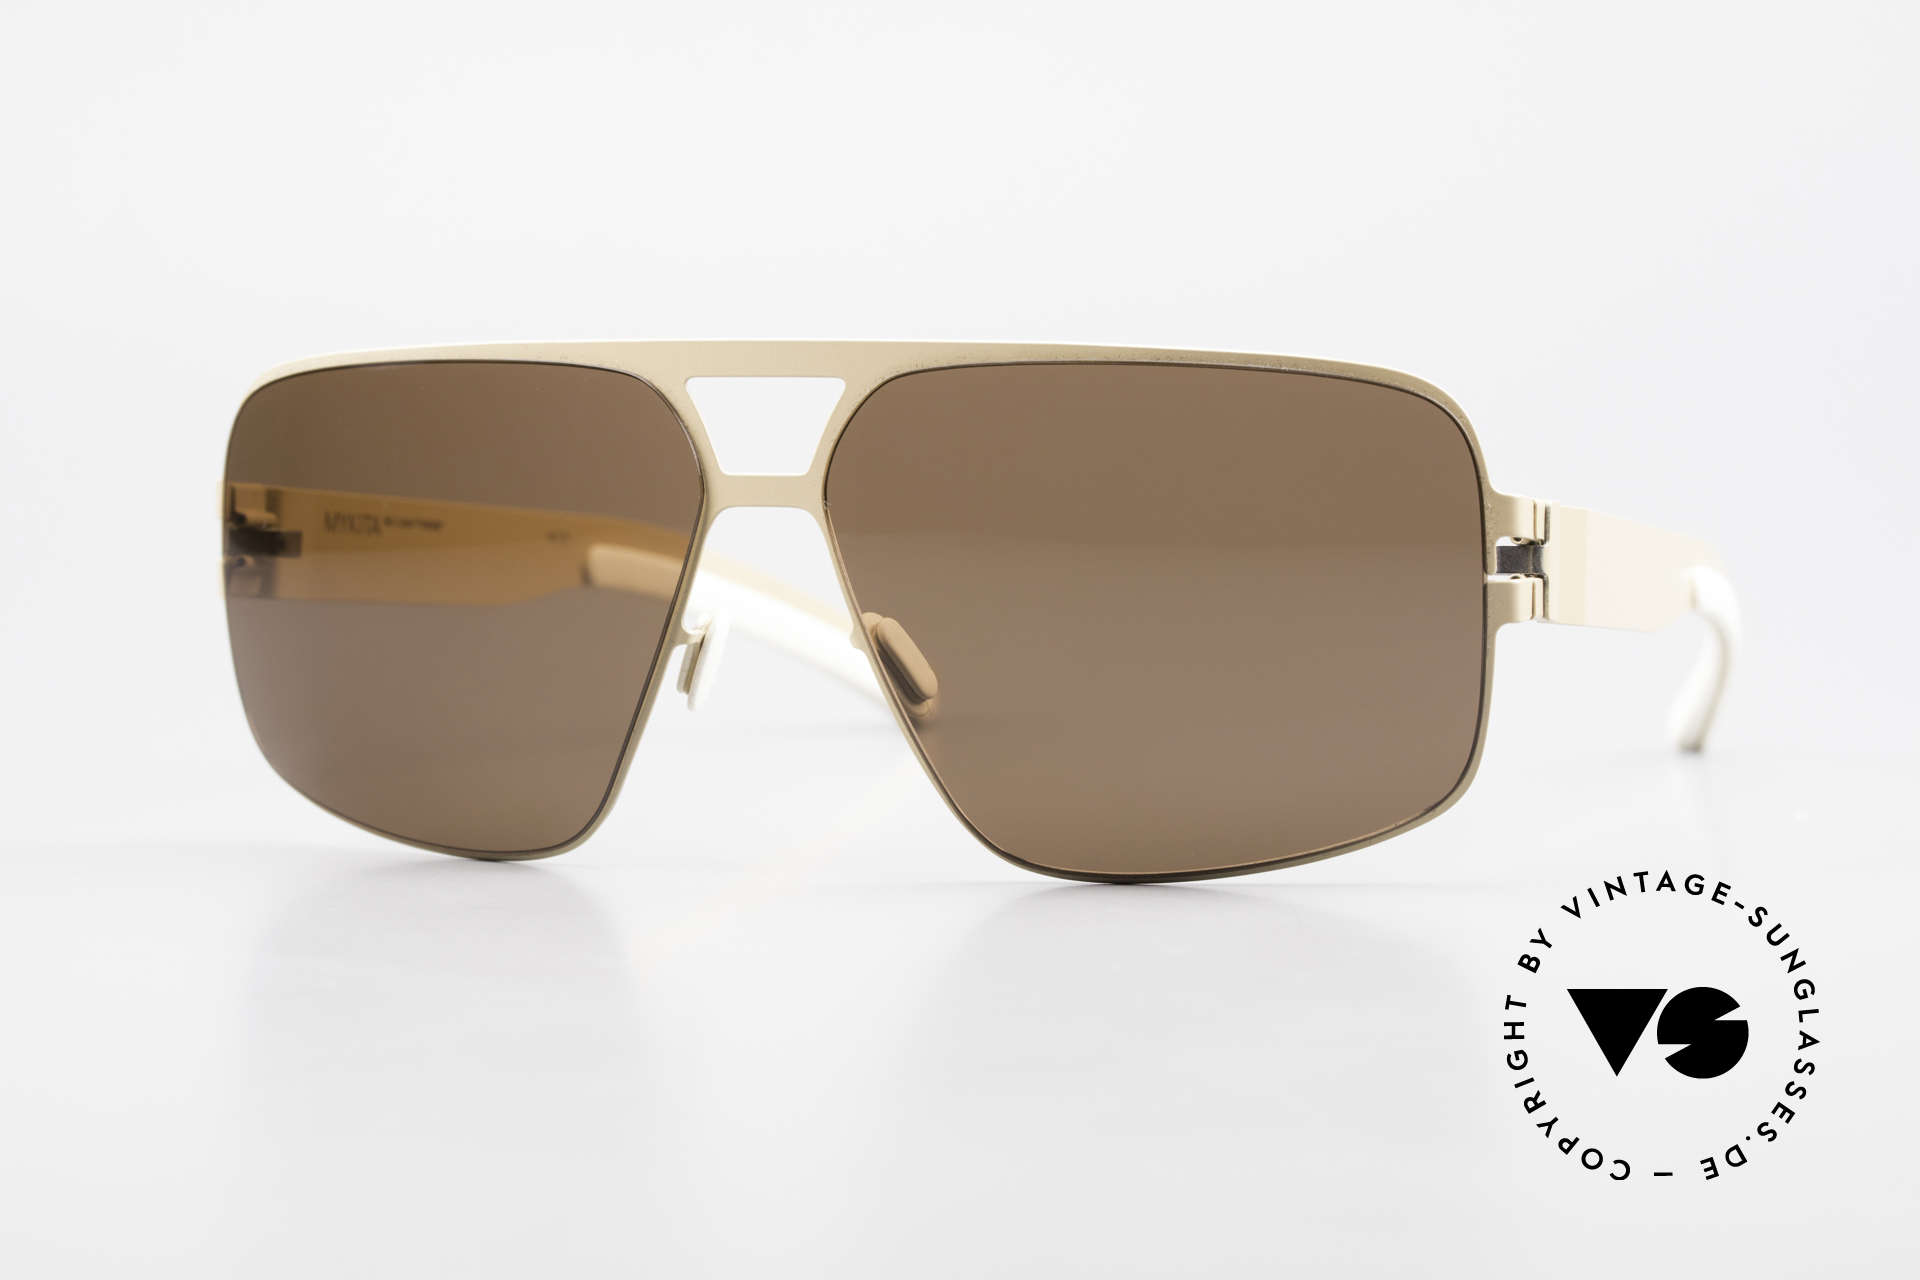 Mykita Tyrone 2011's Mykita Vintage Shades, original VINTAGE MYKITA men's sunglasses from 2011, Made for Men